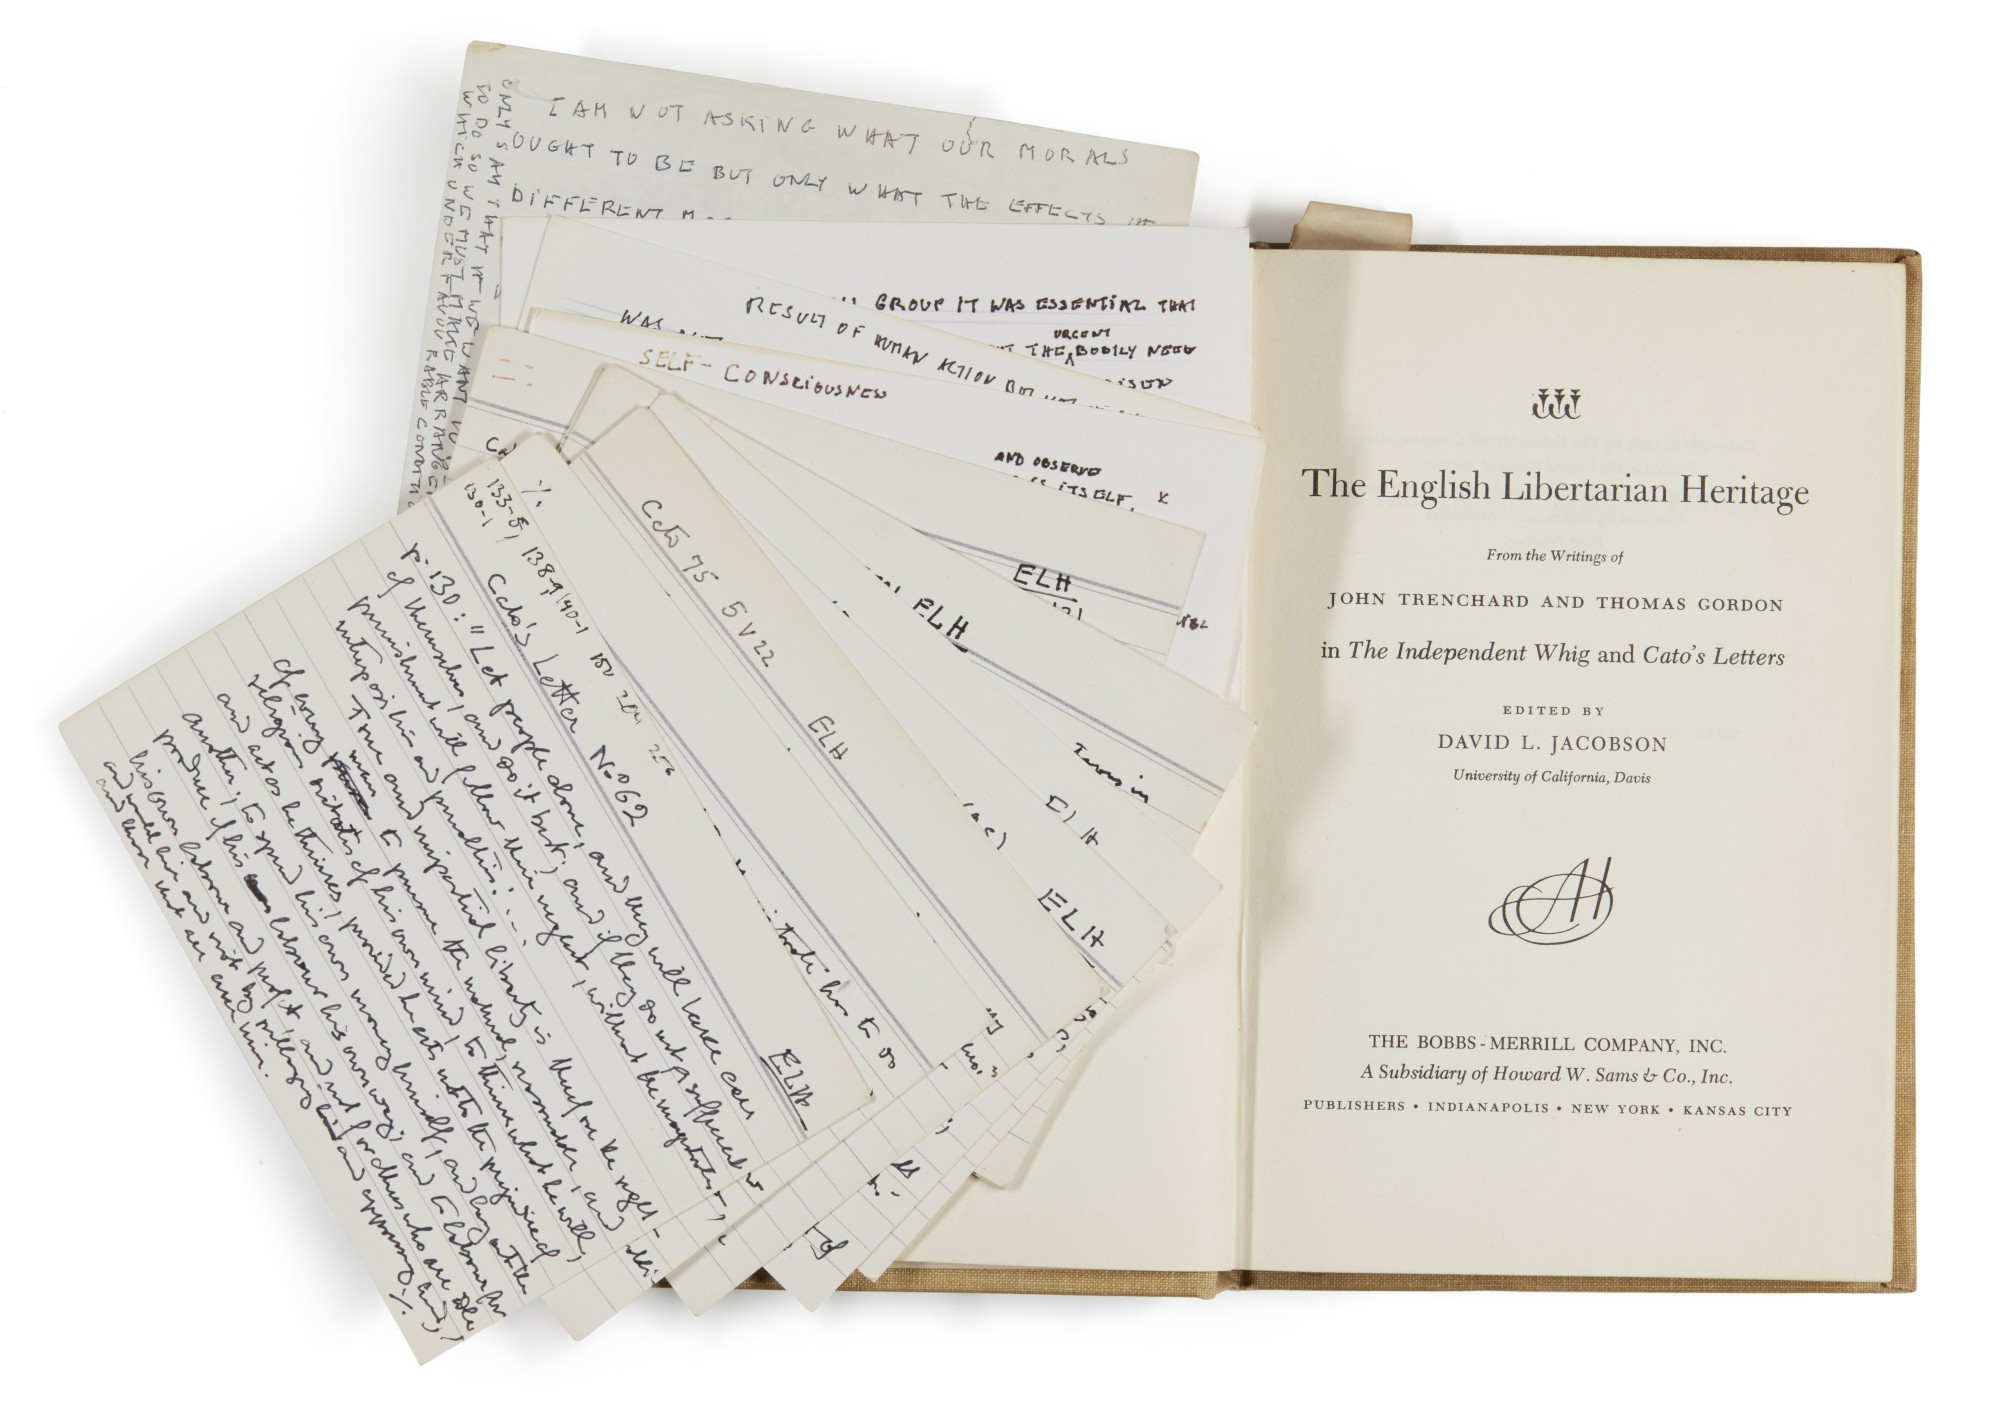 6 VOLUMES FROM HAYEK'S LIBRARY, ONE VOLUME WITH MANUSCRIPT NOTECARDS, 1915-1984